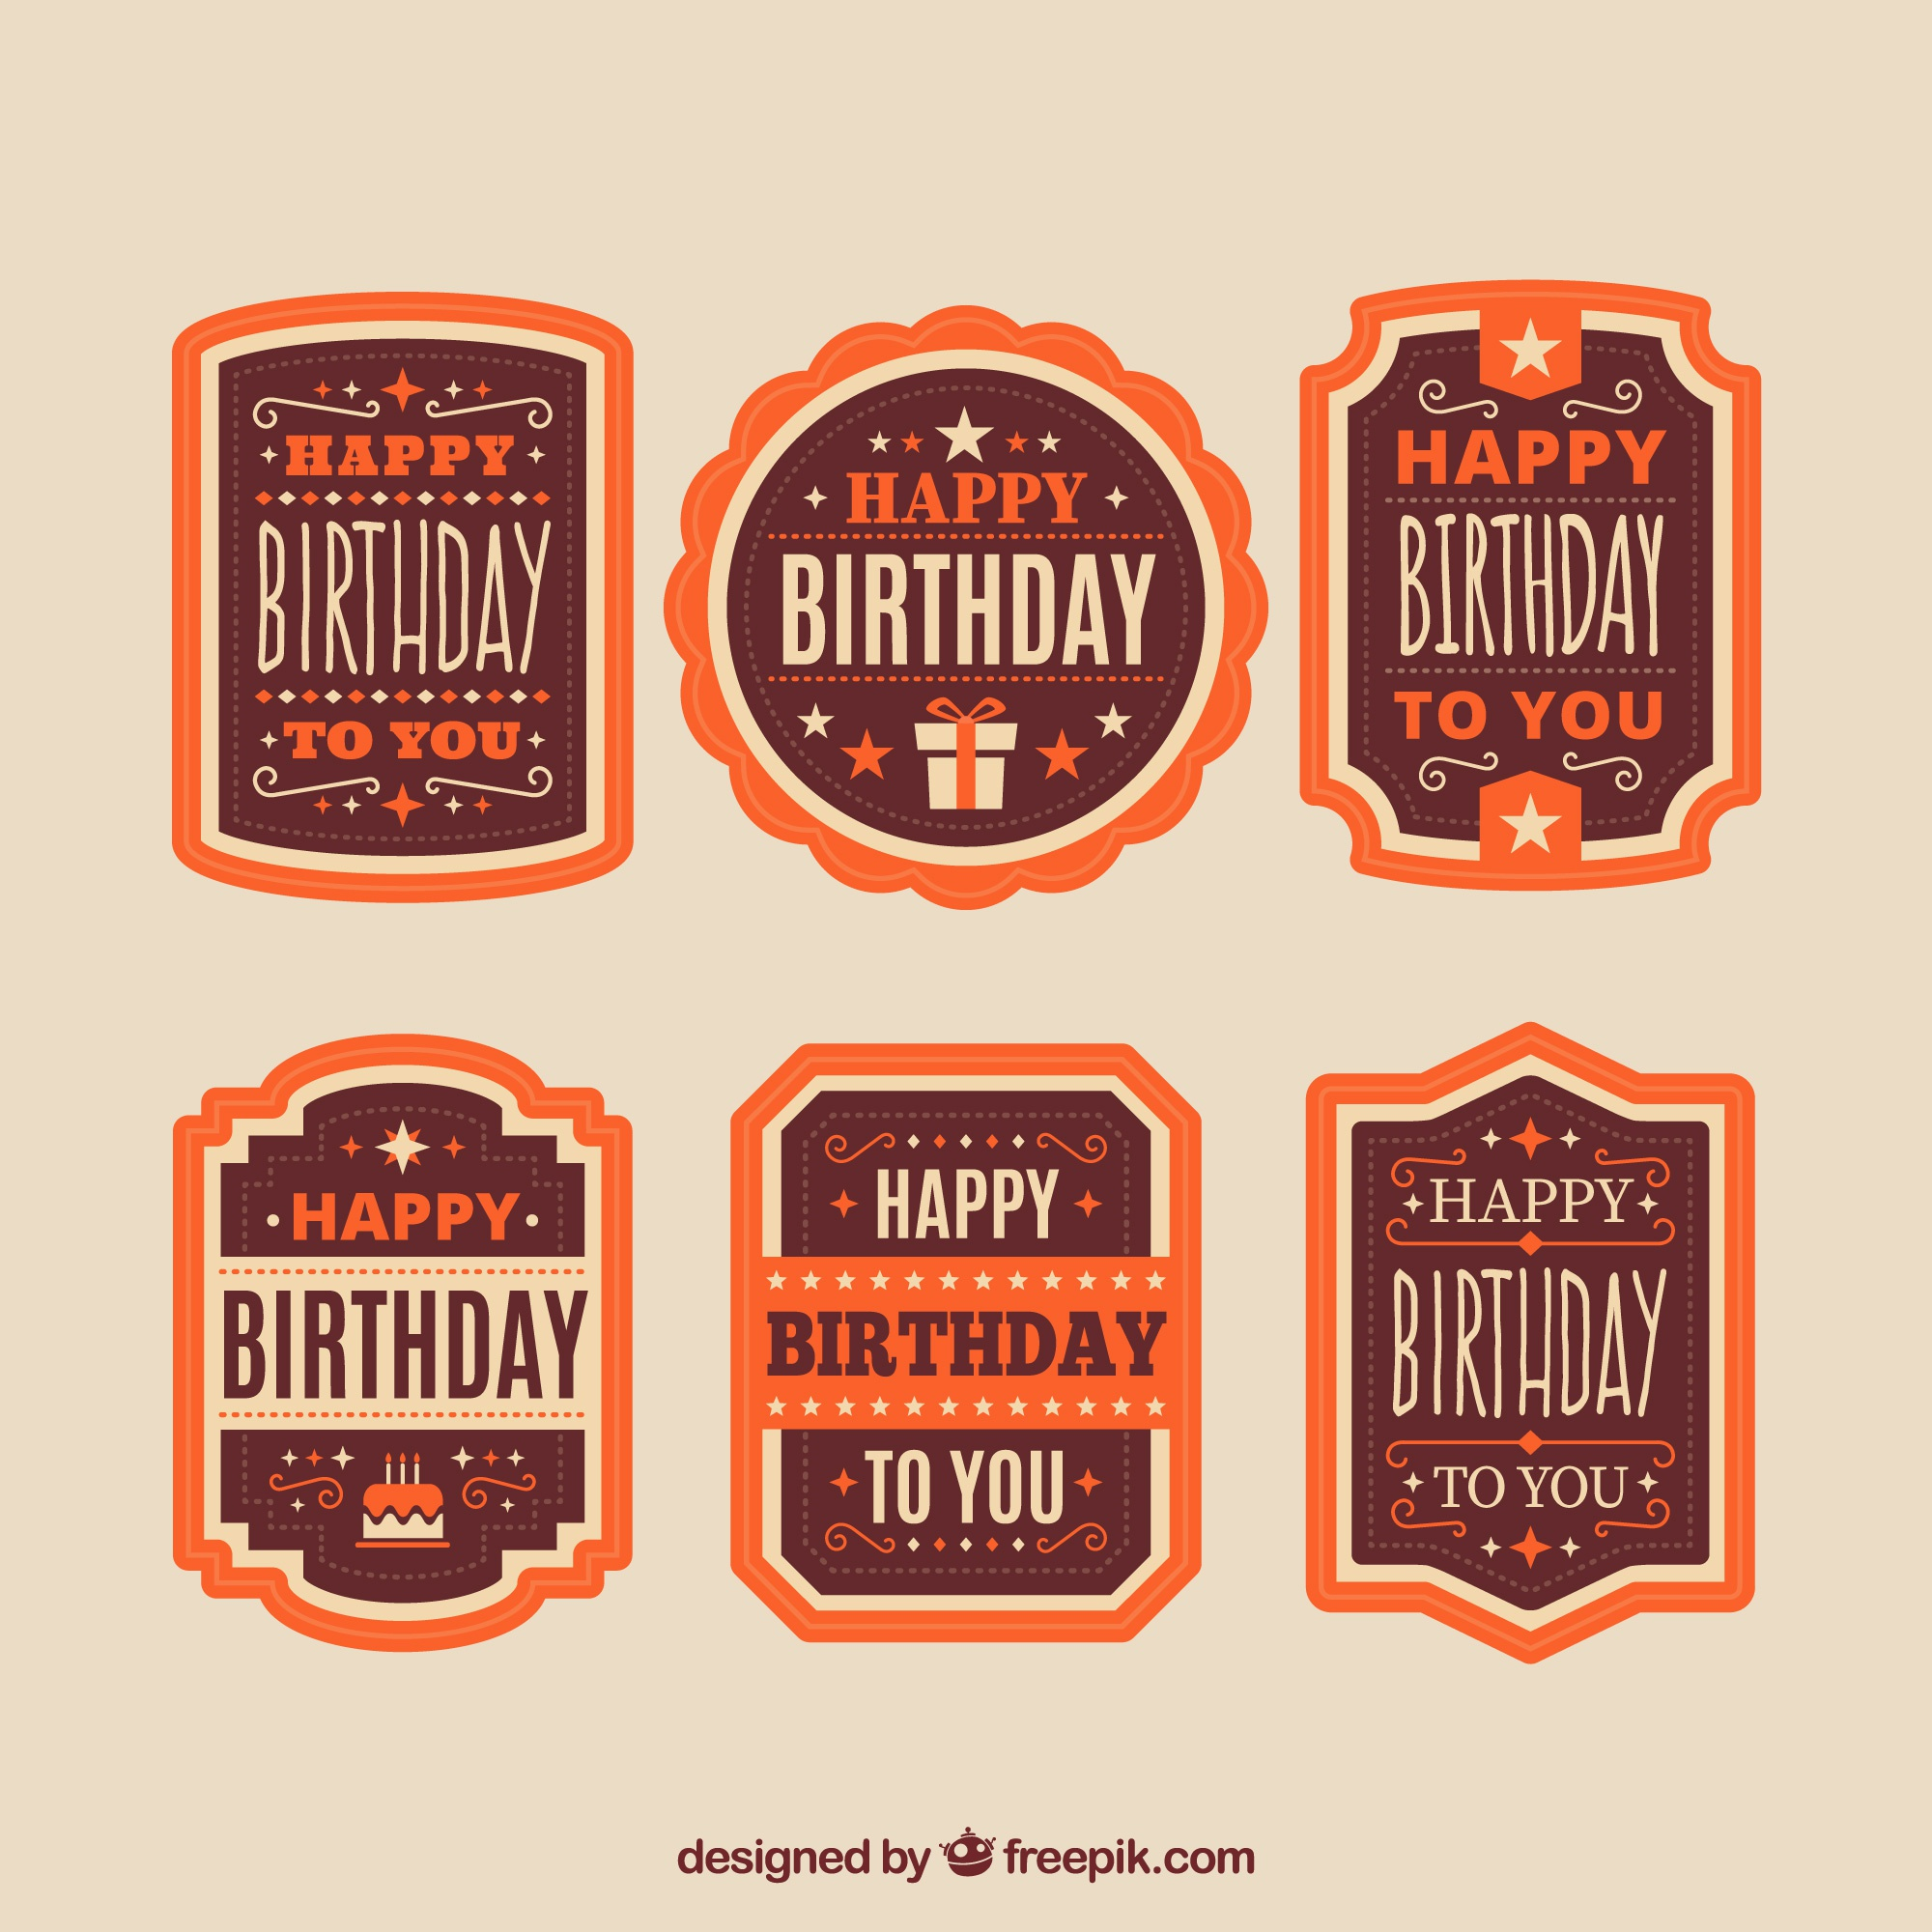 Decorative birthday badges in orange tones